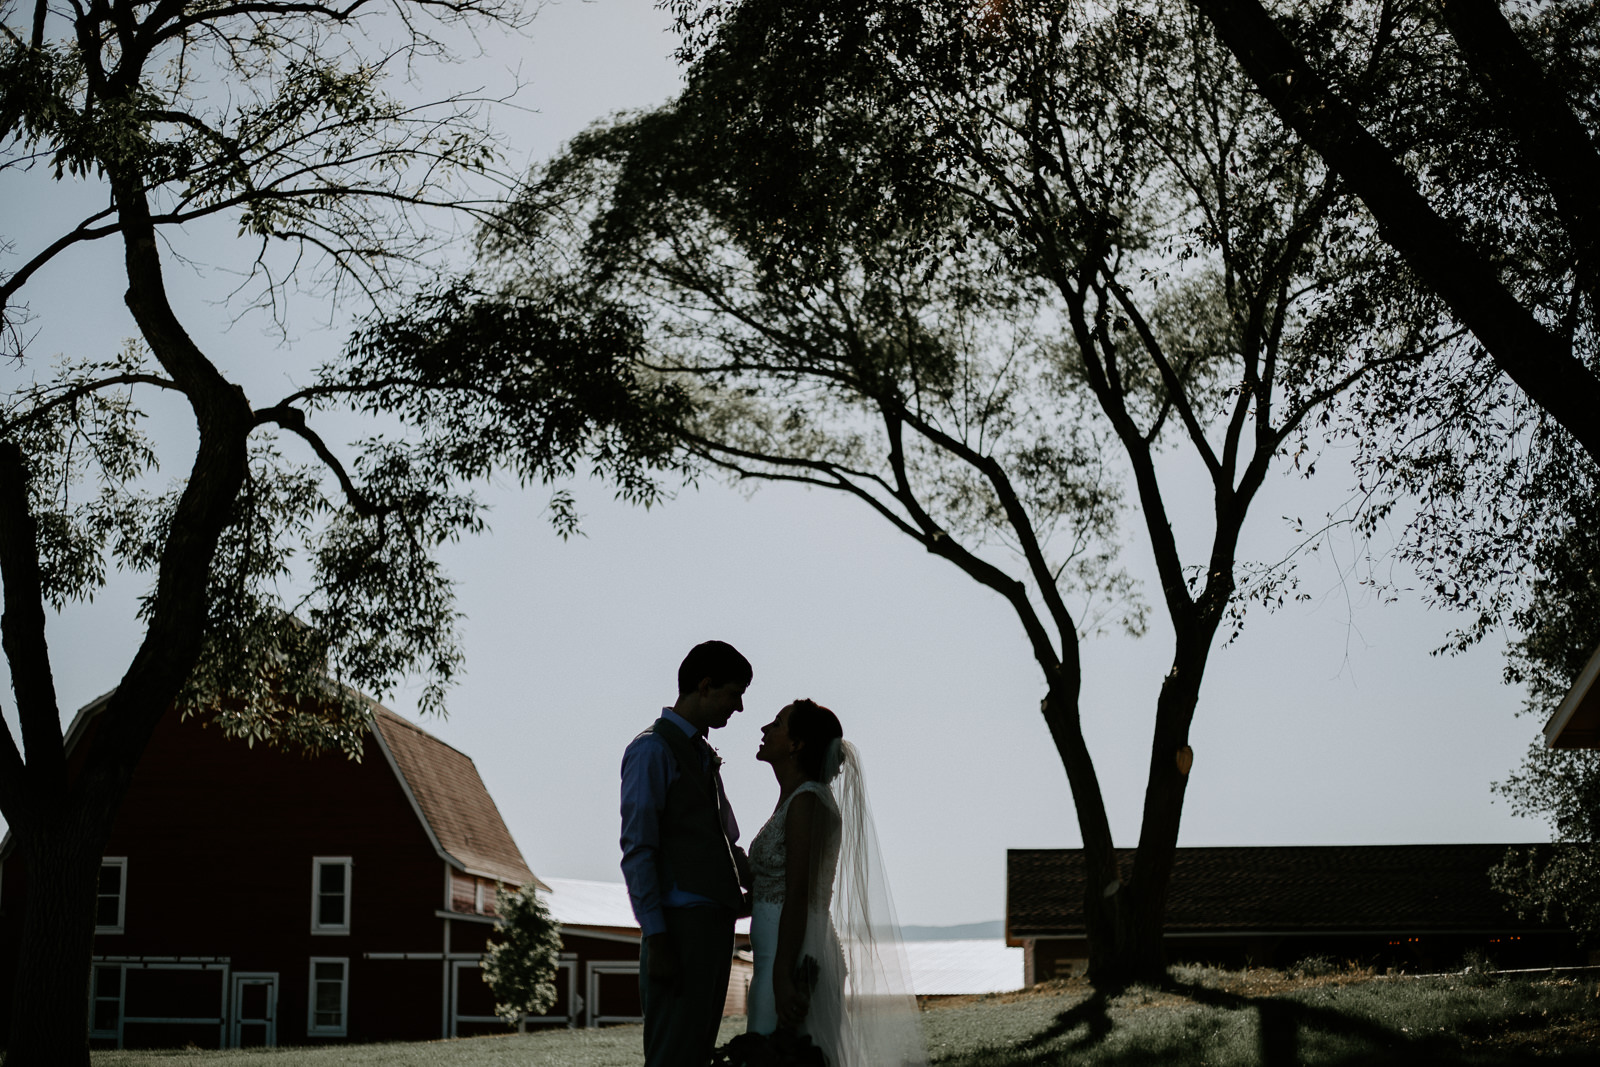 Bride and groom silhoutte with red barn and trees